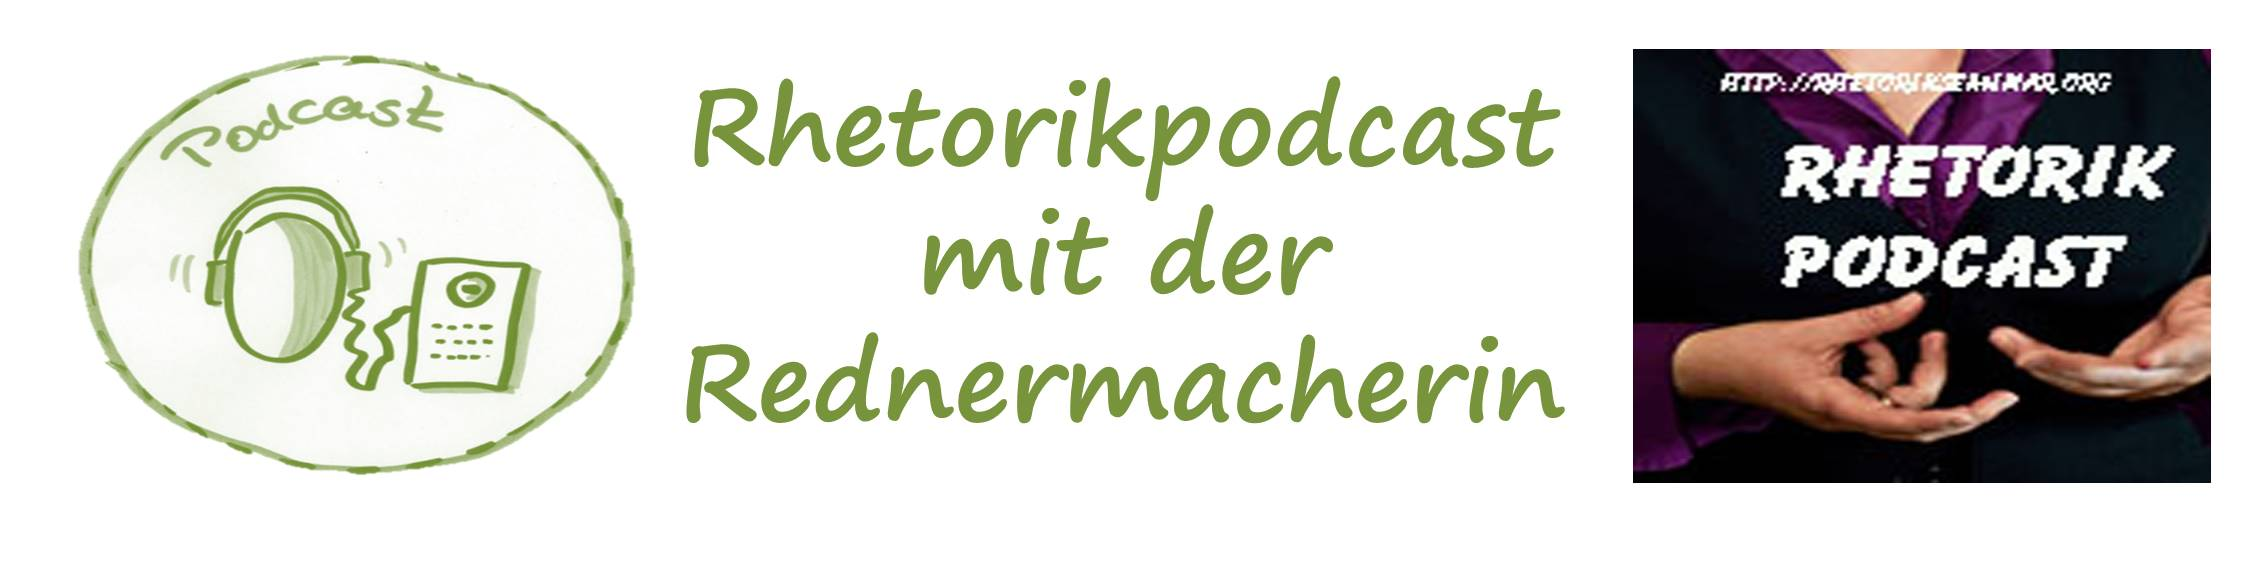 Rhetoriktpodcast Rednermacherin